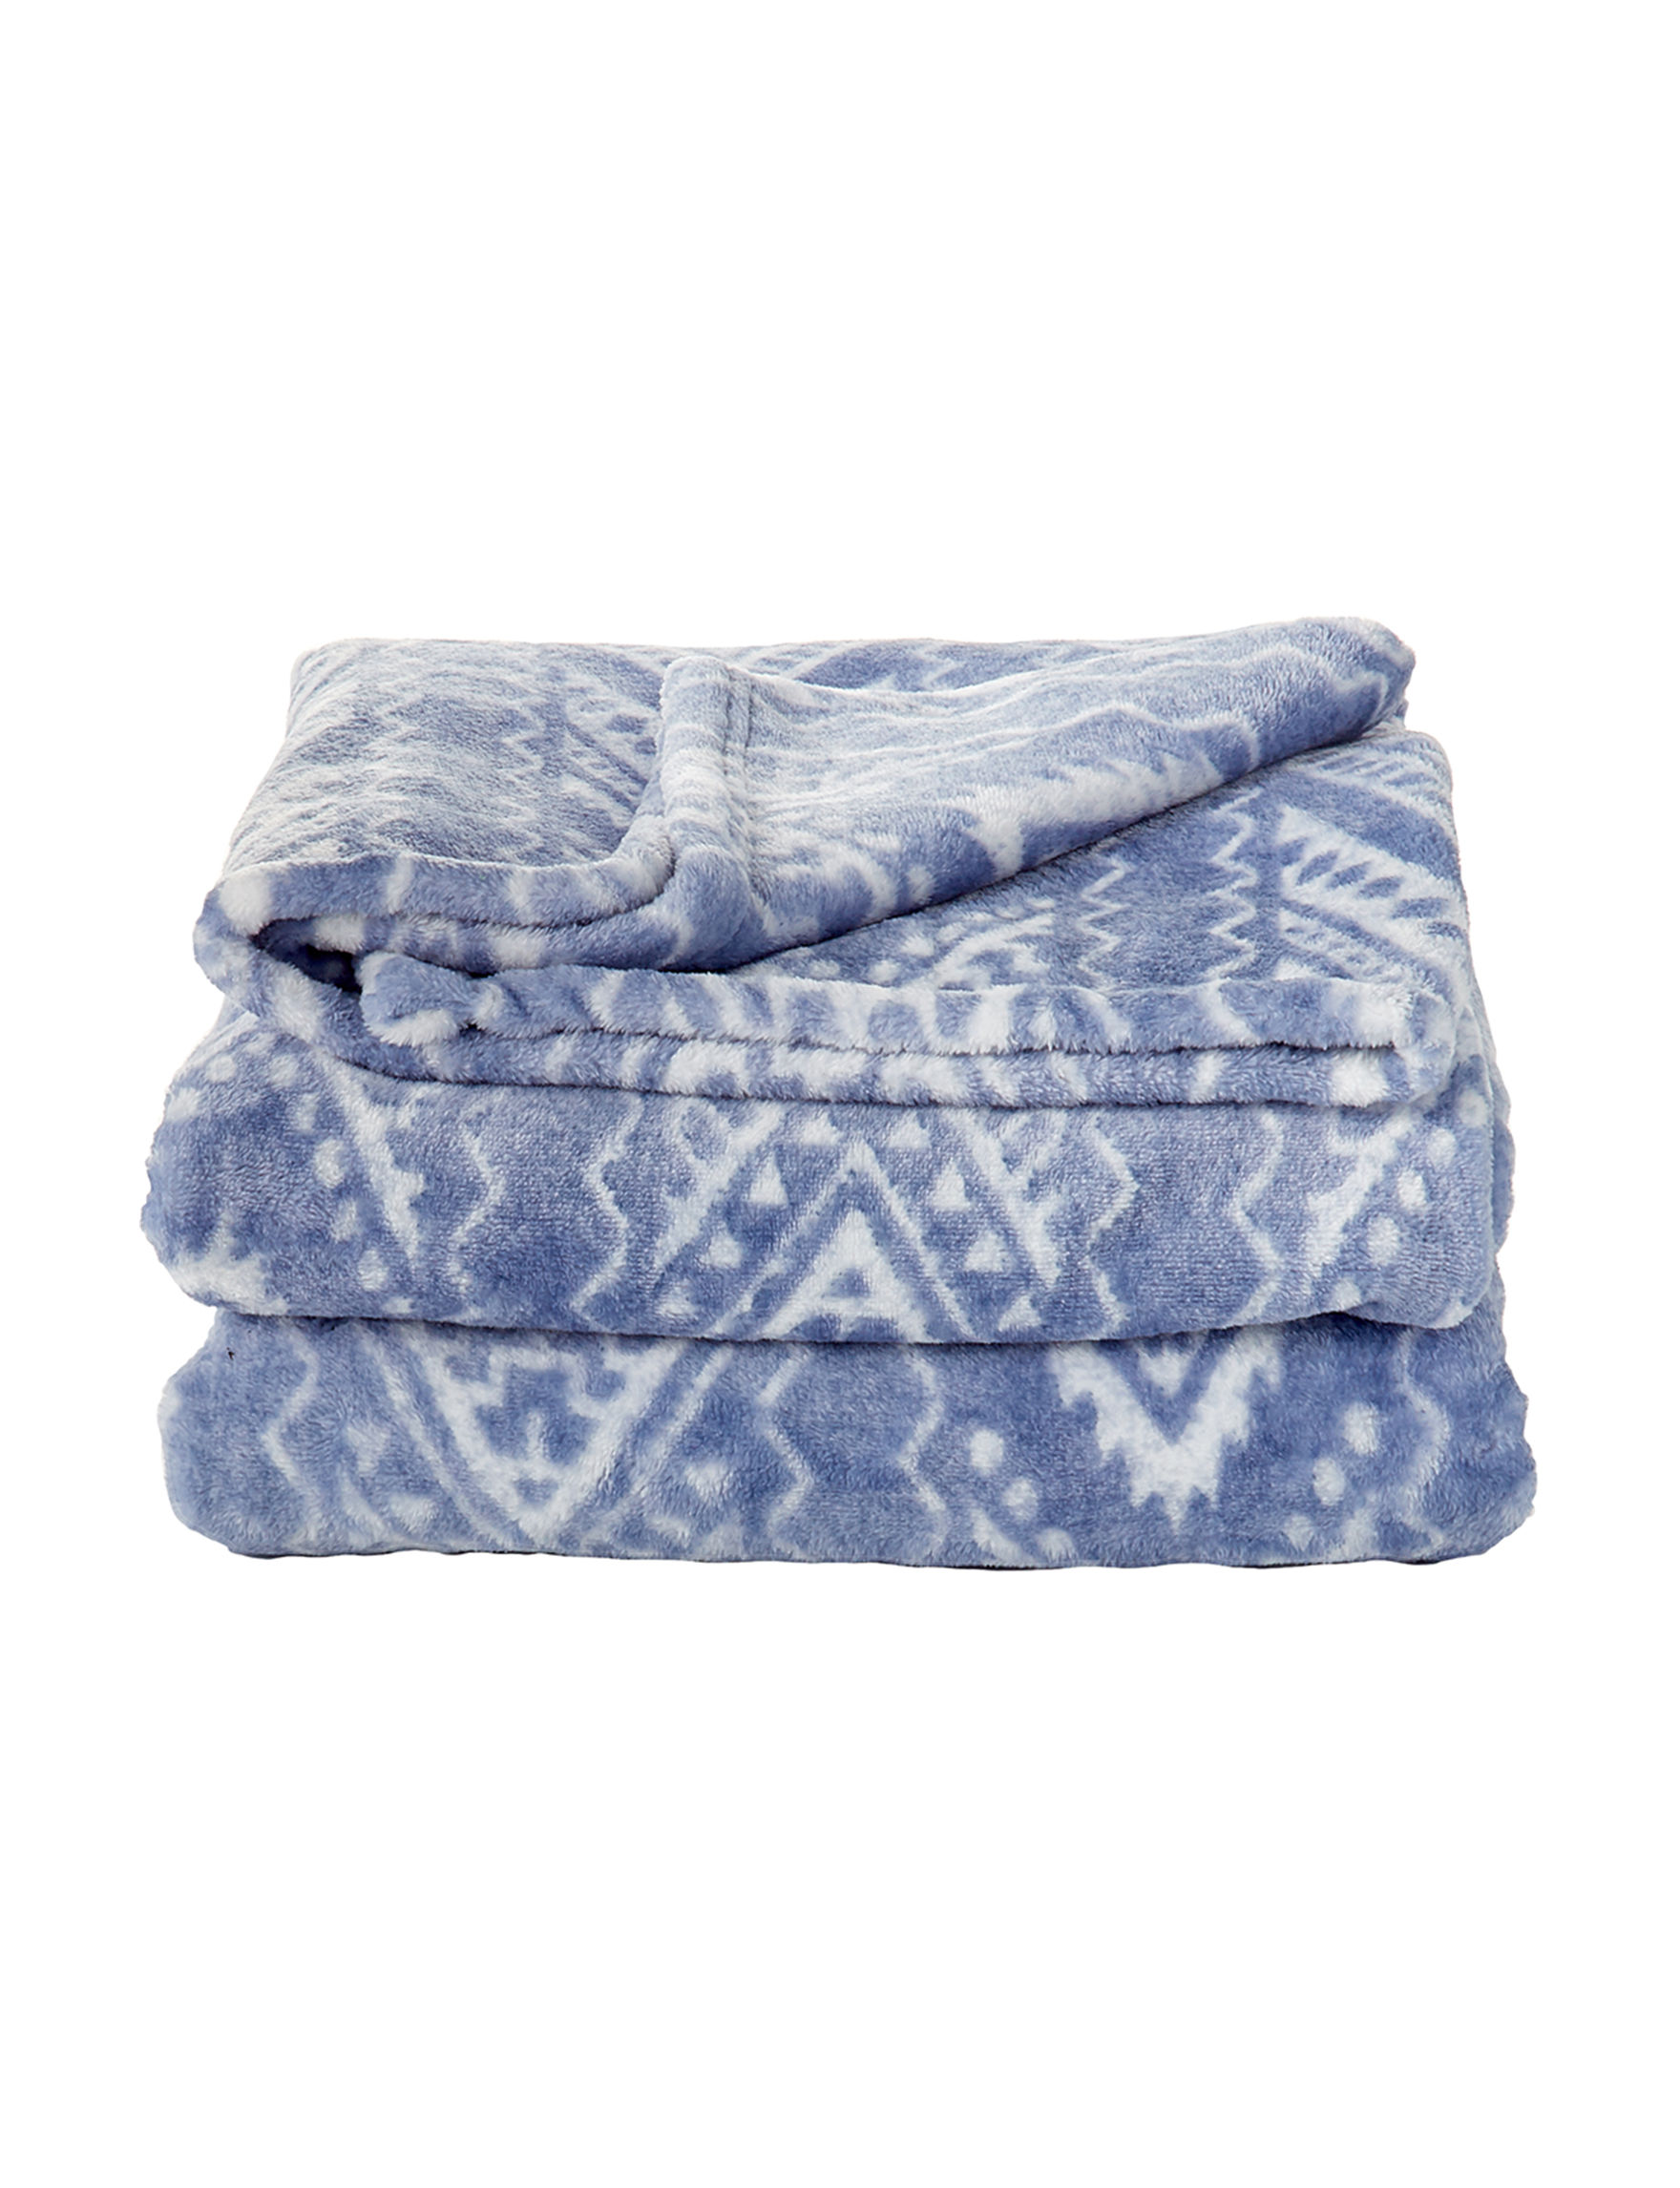 Dream Home NY Blue Chevron Blankets & Throws